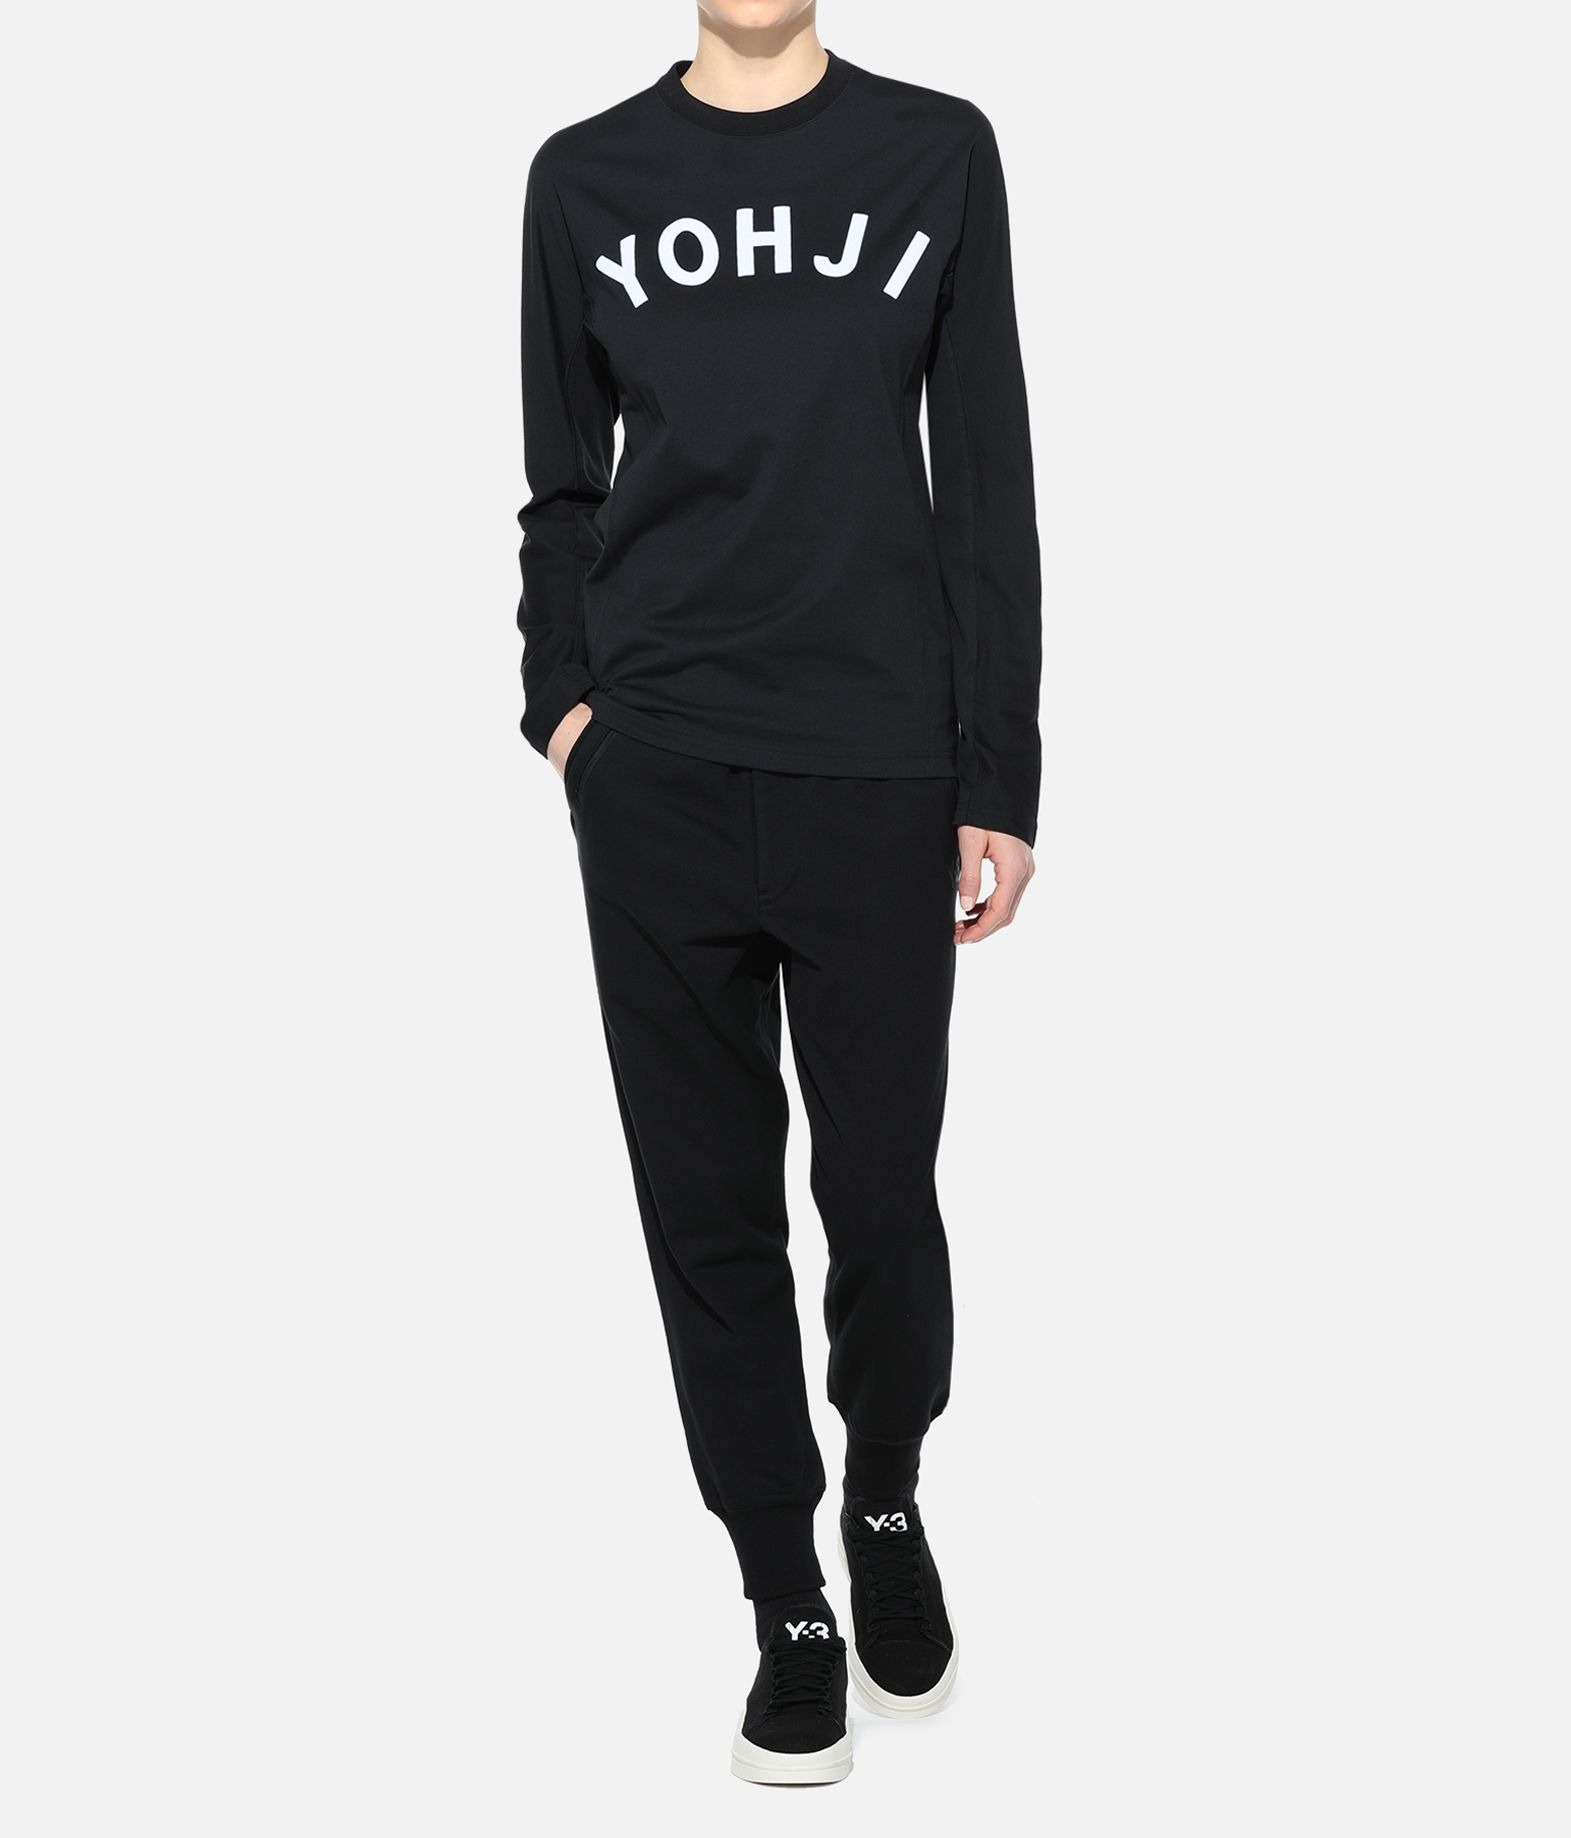 Y-3 Y-3 Yohji Letters Tee T-shirt maniche lunghe Donna a